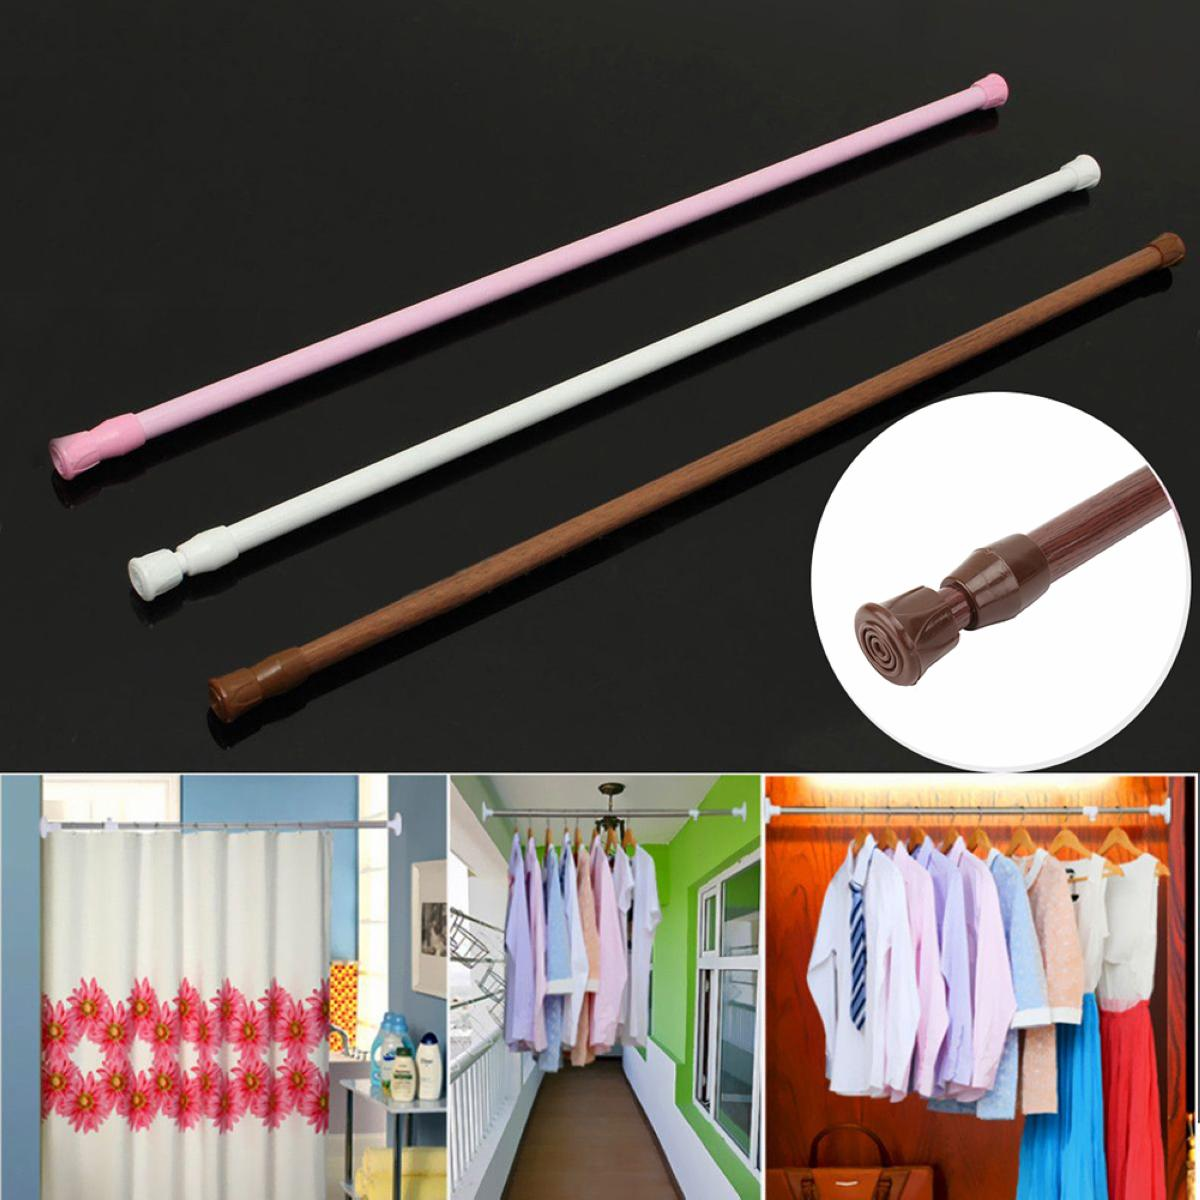 2018 60 110cm Adjustable Spring Loaded Bathroom Shower Curtain Rod Tension Extendable Telescopic Poles Rail Hanger From Tanguimei2 784